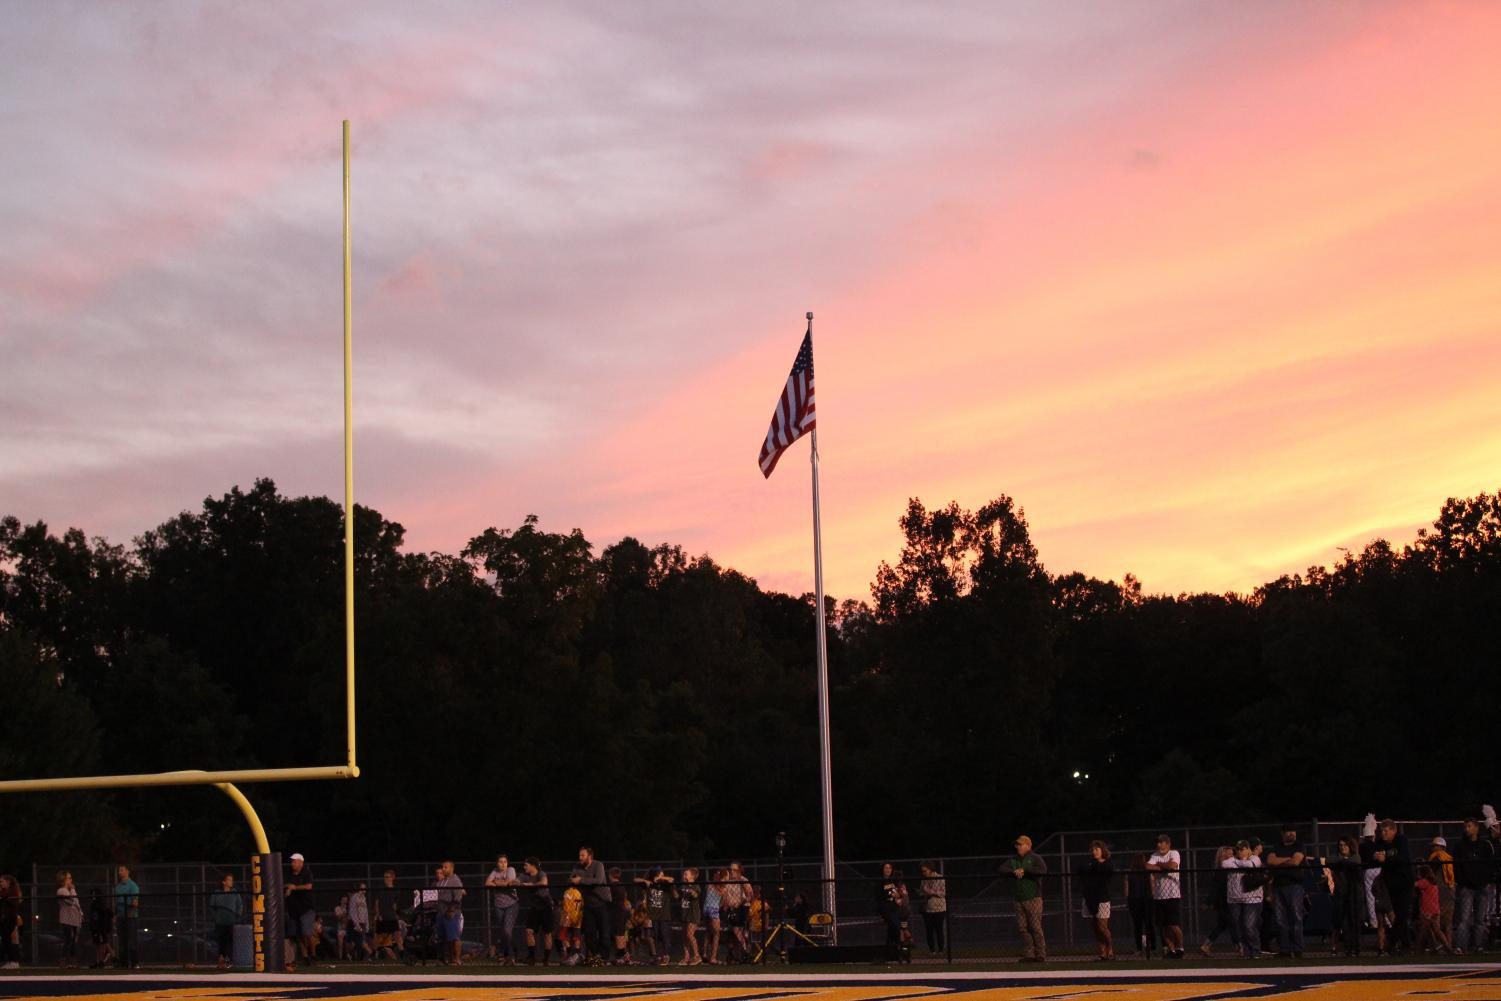 The flag flies at the Grand Ledge High School football field preparing for the Fallen Heroes game on September 13th. The town was honored one again to remember those who so bravely fought for our country.